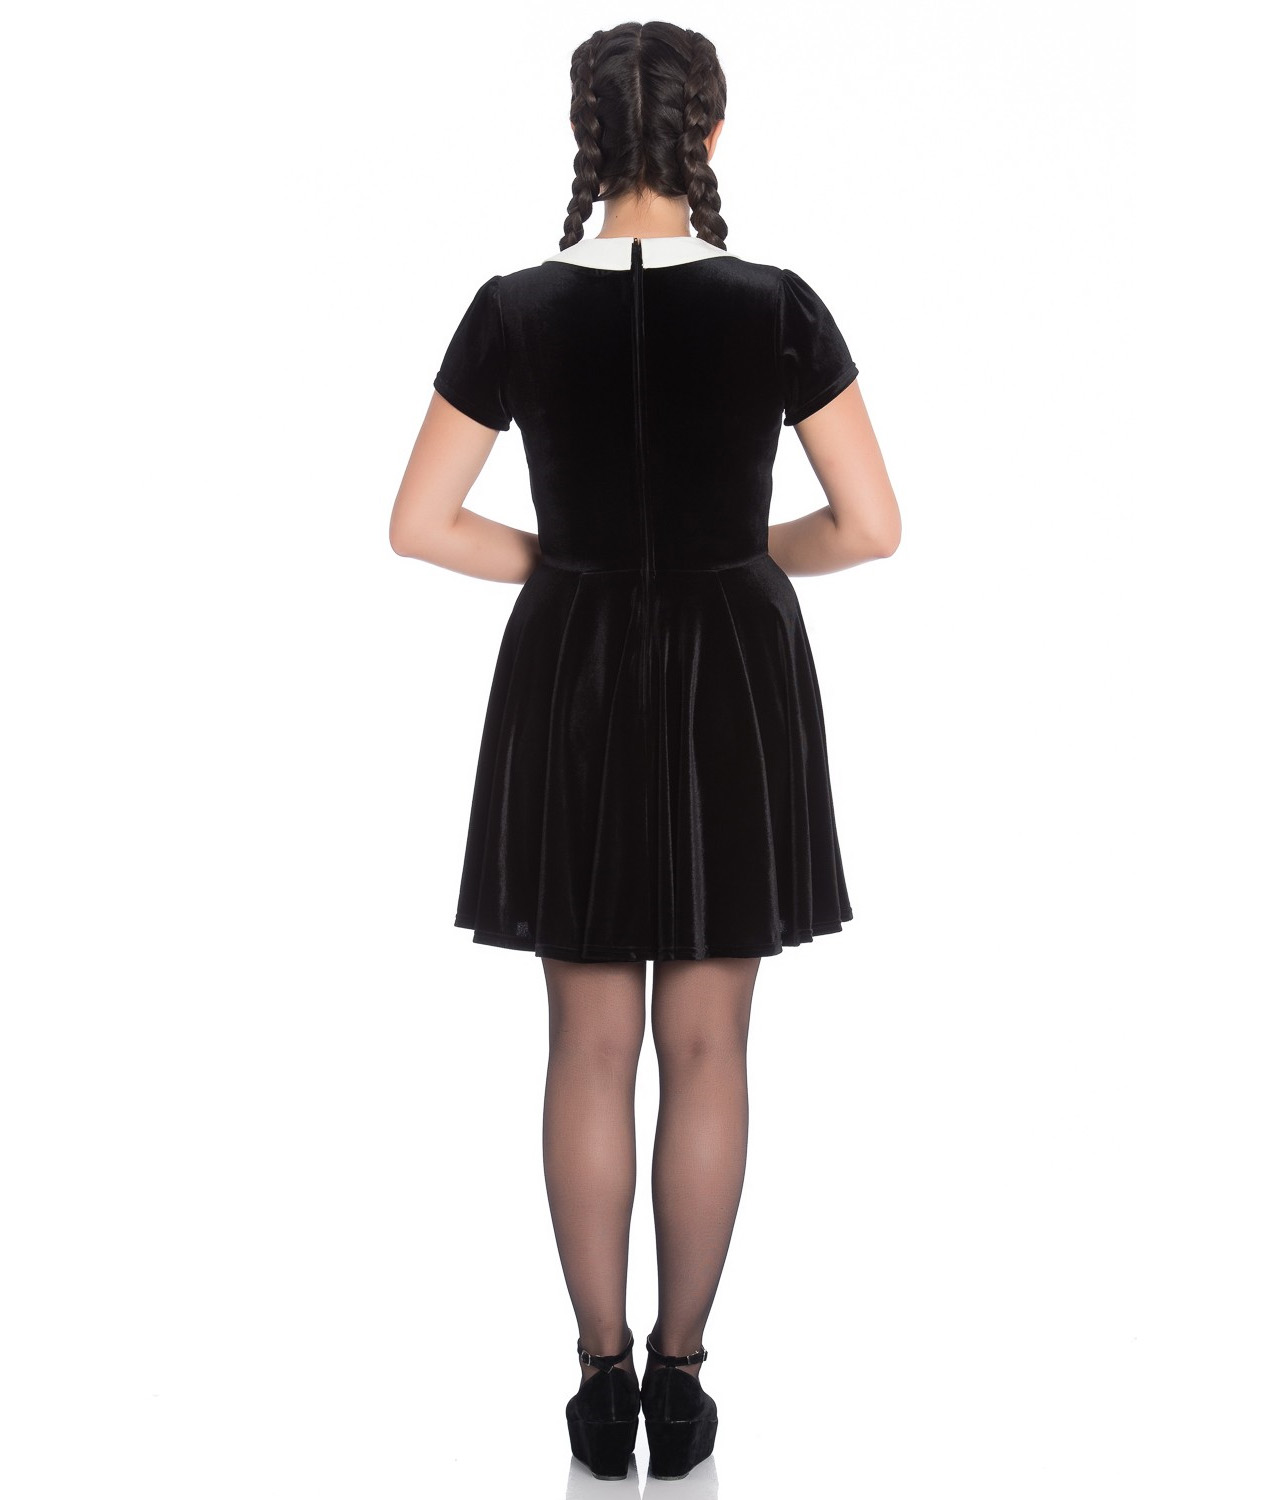 Hell-Bunny-Gothic-Mini-Skater-Dress-MISS-MUFFET-Spiders-Black-Velvet-All-Sizes thumbnail 13